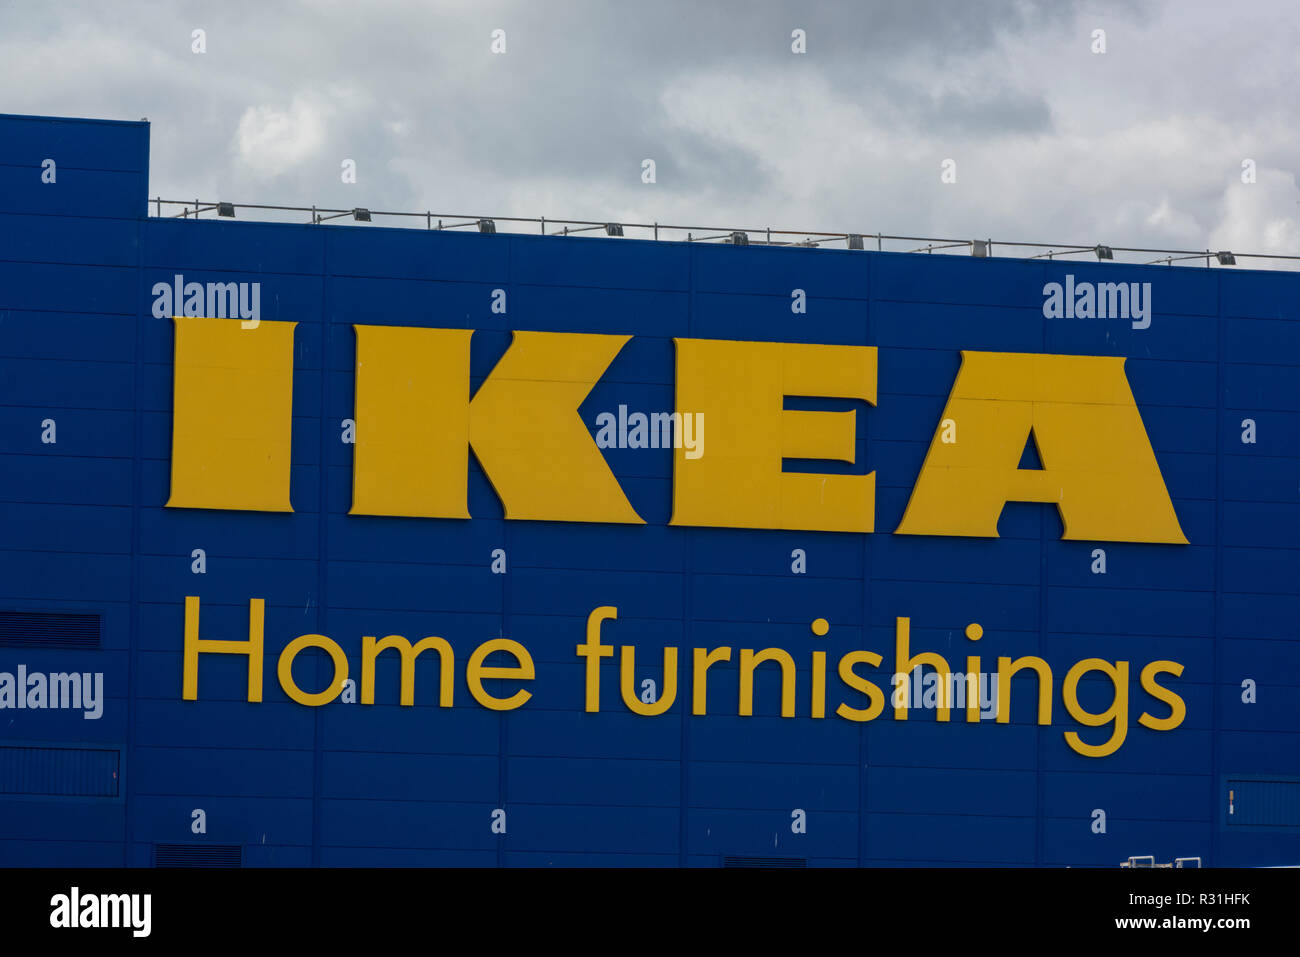 Outlet Brunnthal Ikea Warehouse Stock Photos And Ikea Warehouse Stock Images